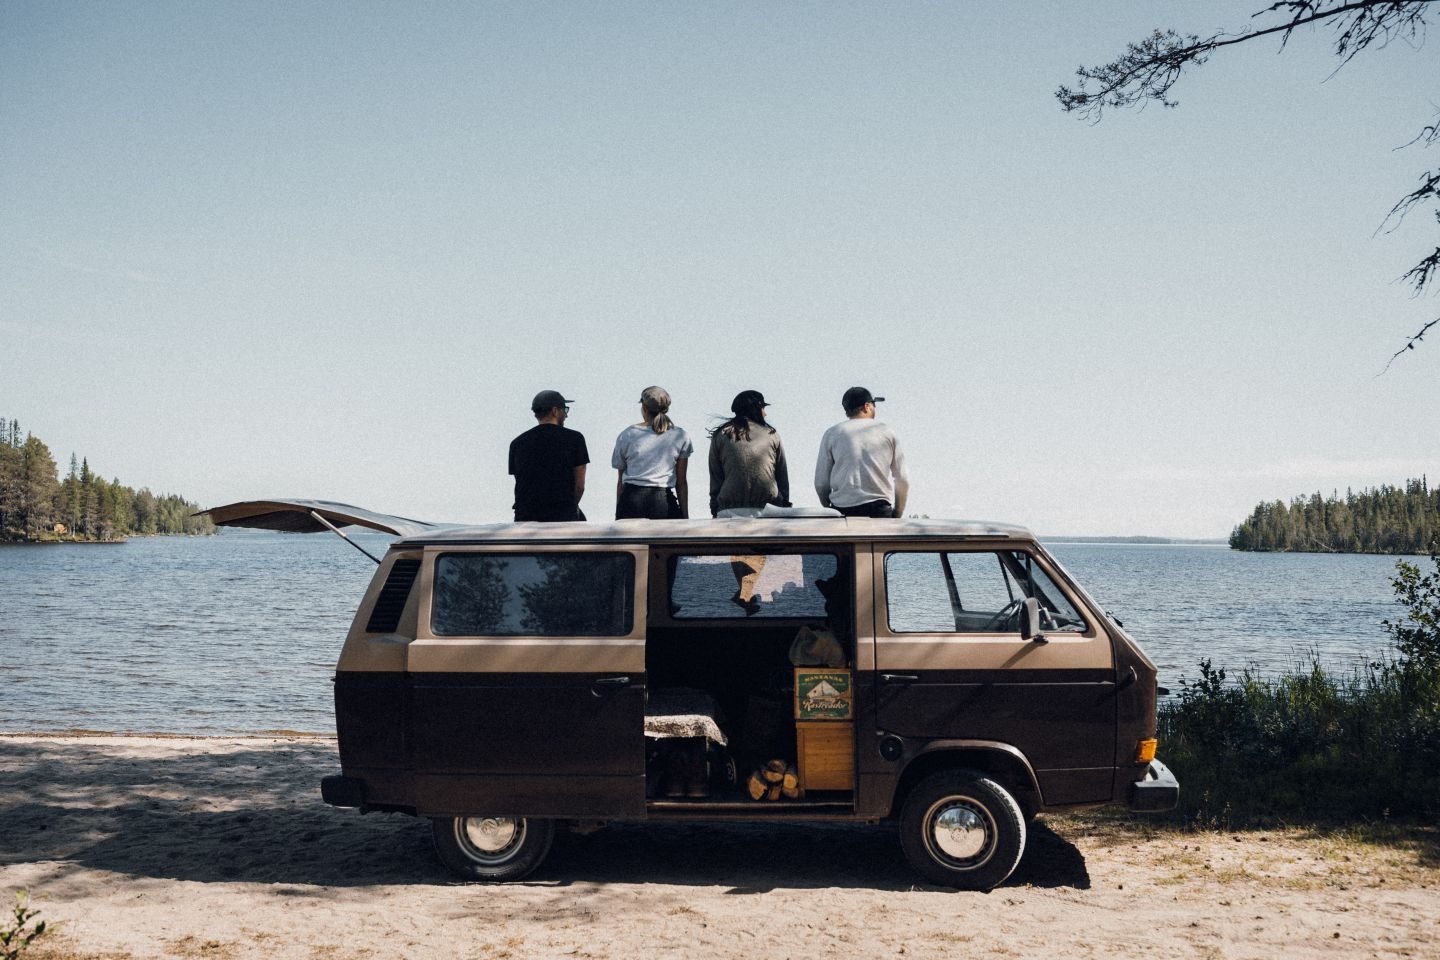 Group of Instagram Influencers sitting on top of the van staring at the lake ion Finnish Lapland